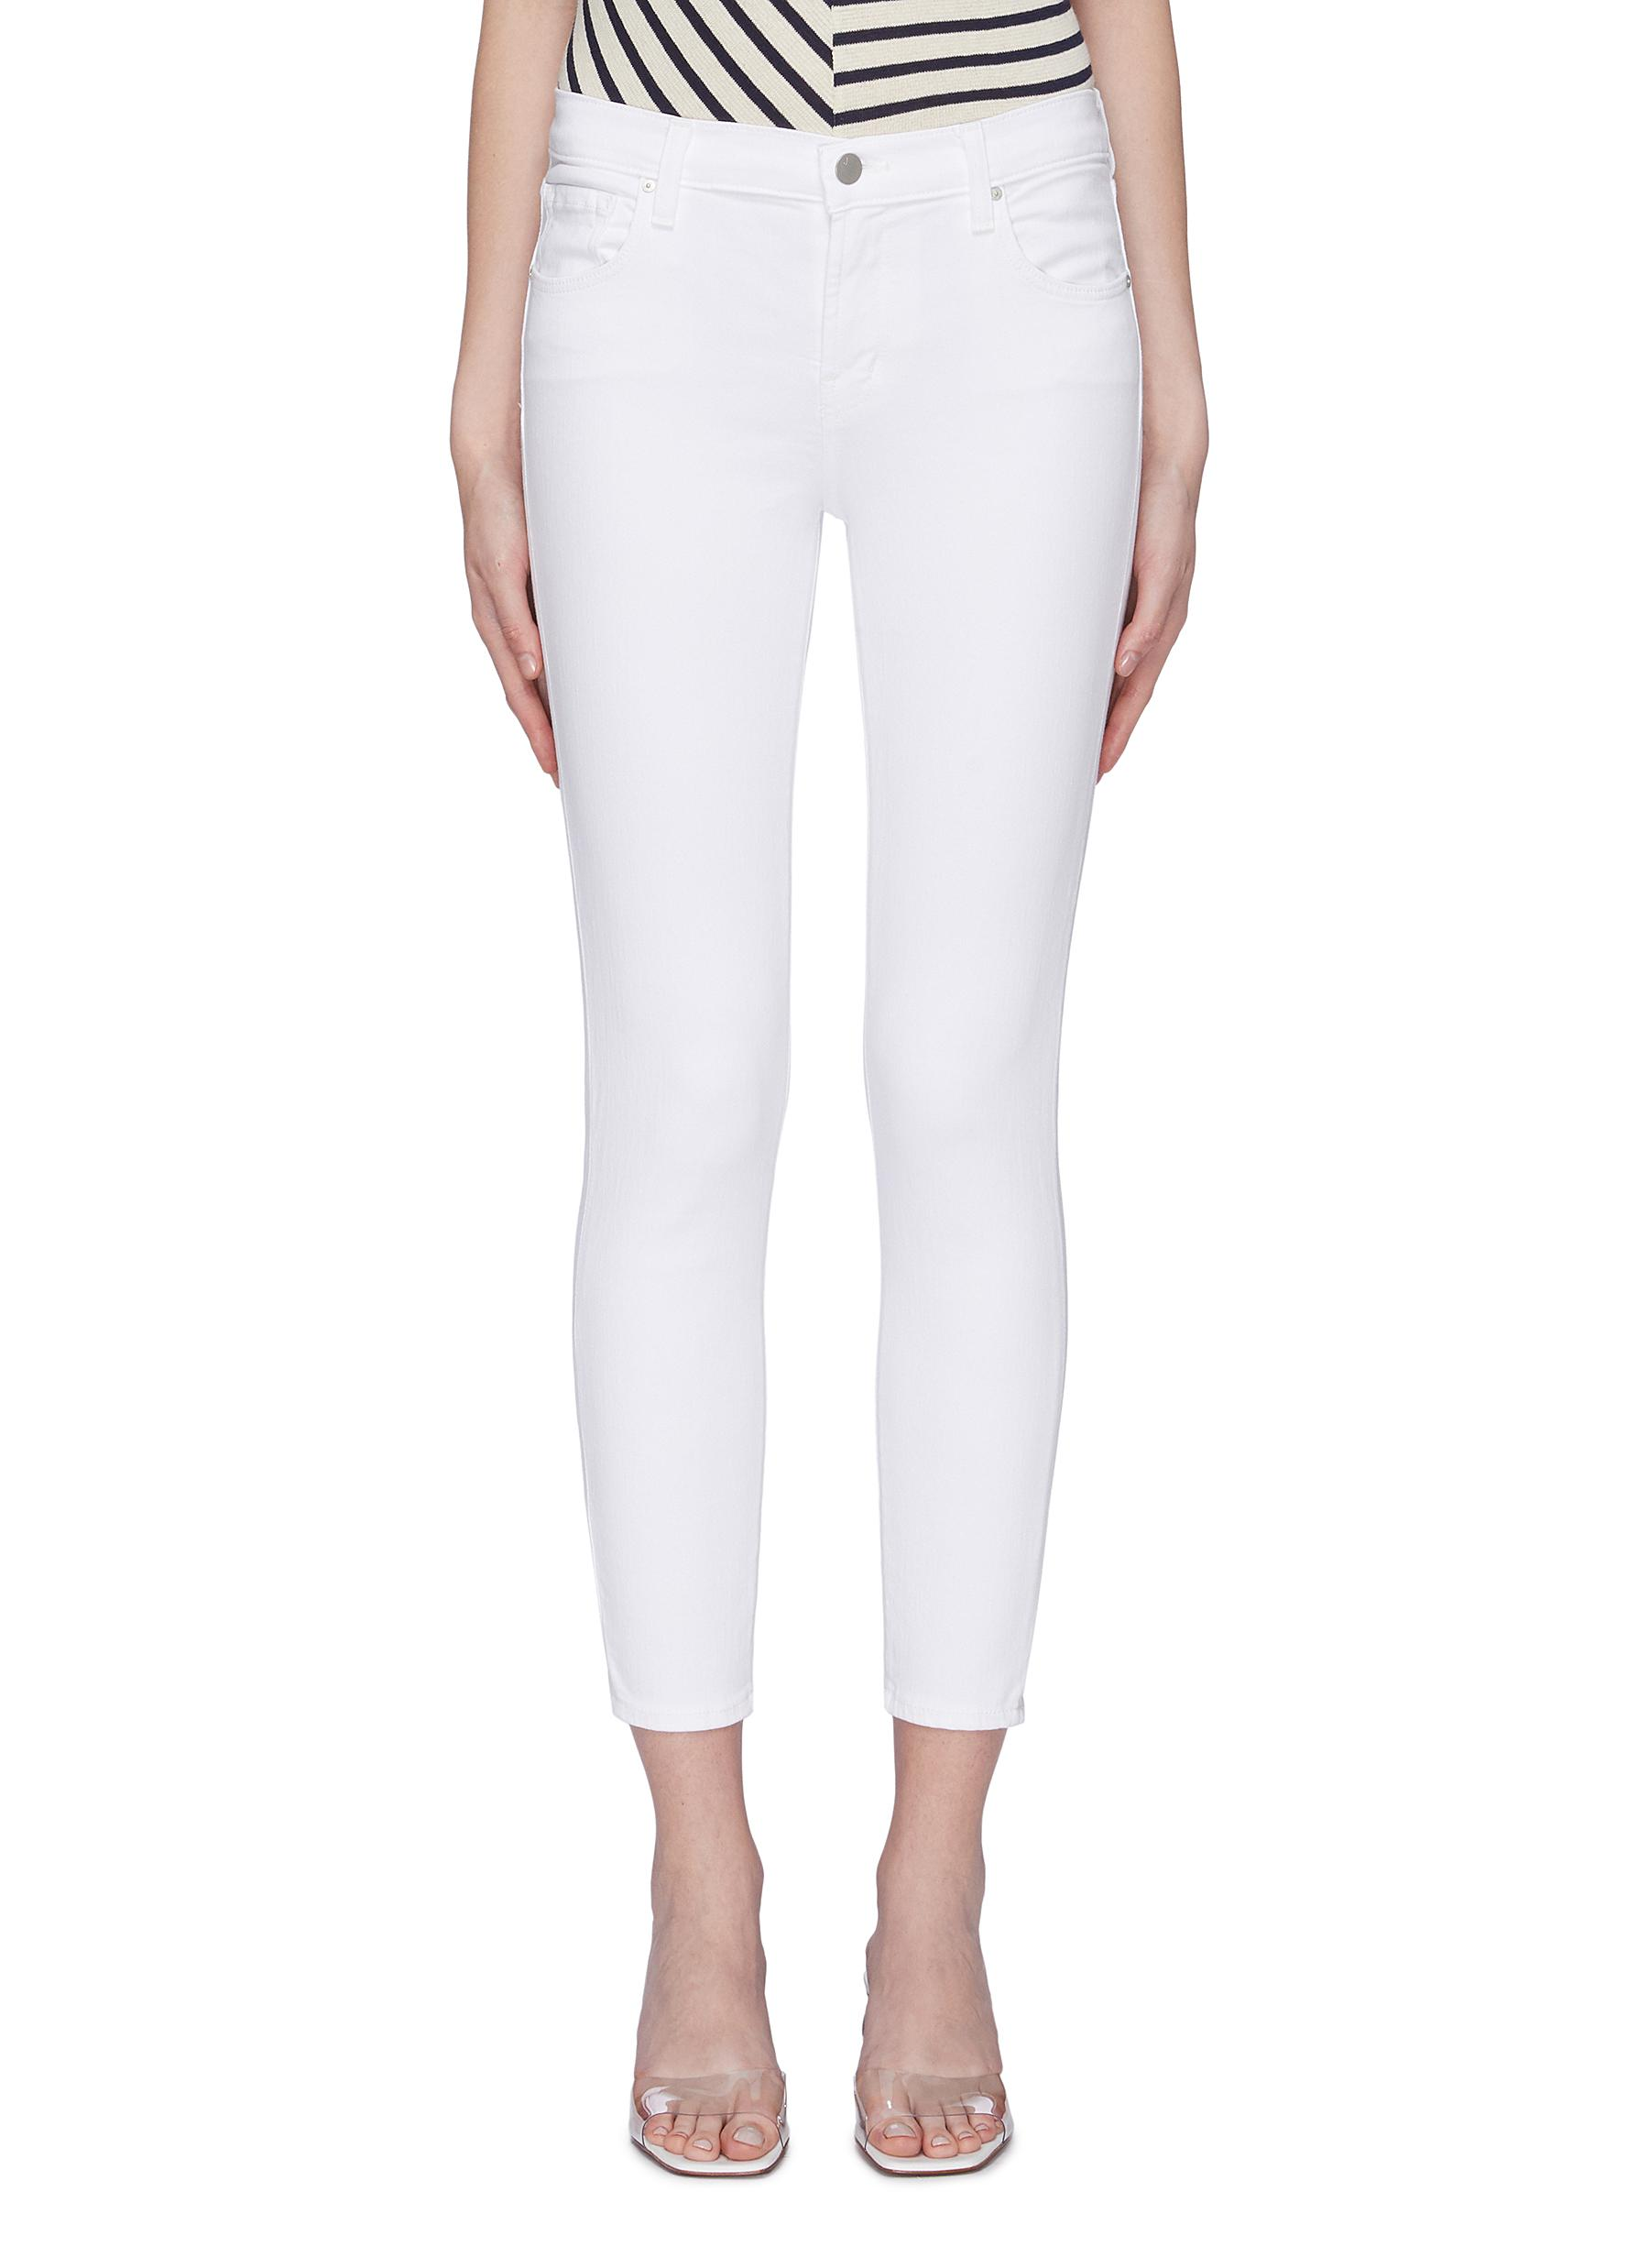 Buy J Brand Jeans '835' cropped skinny jeans